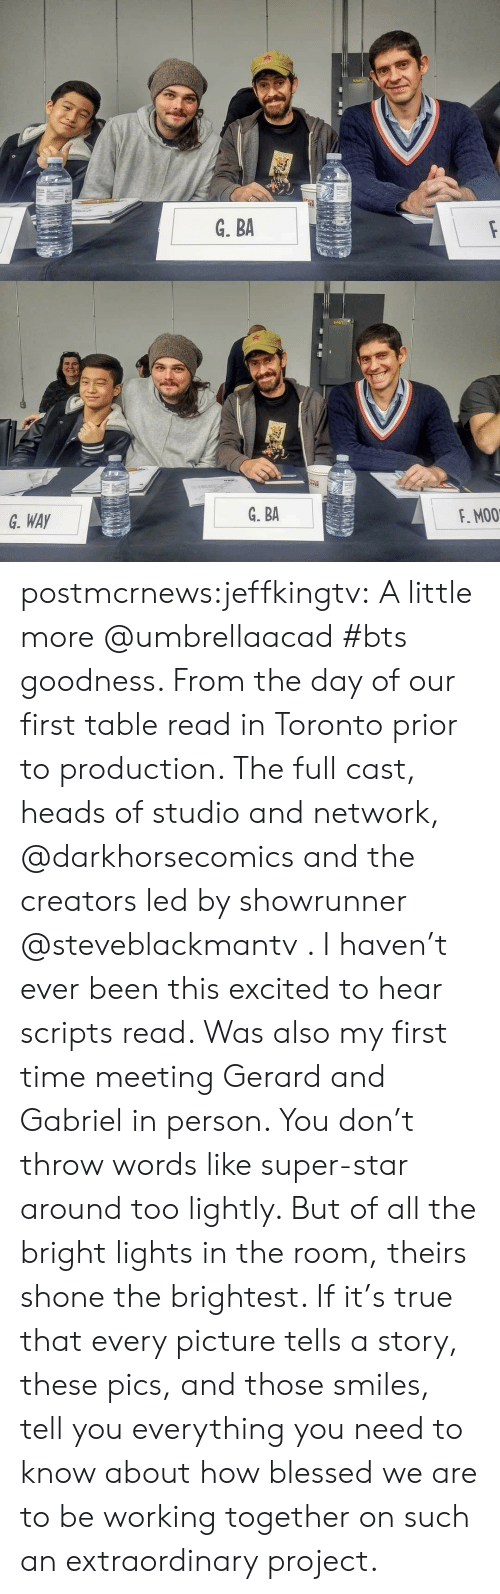 Blessed, Instagram, and True: G. WAY  G. BA  F. MO0 postmcrnews:jeffkingtv: A little more @umbrellaacad #bts goodness. From the day of our first table read in Toronto prior to production. The full cast, heads of studio and network, @darkhorsecomics and the creators led by showrunner @steveblackmantv . I haven't ever been this excited to hear scripts read. Was also my first time meeting Gerard and Gabriel in person. You don't throw words like super-star around too lightly. But of all the bright lights in the room, theirs shone the brightest. If it's true that every picture tells a story, these pics, and those smiles, tell you everything you need to know about how blessed we are to be working together on such an extraordinary project.